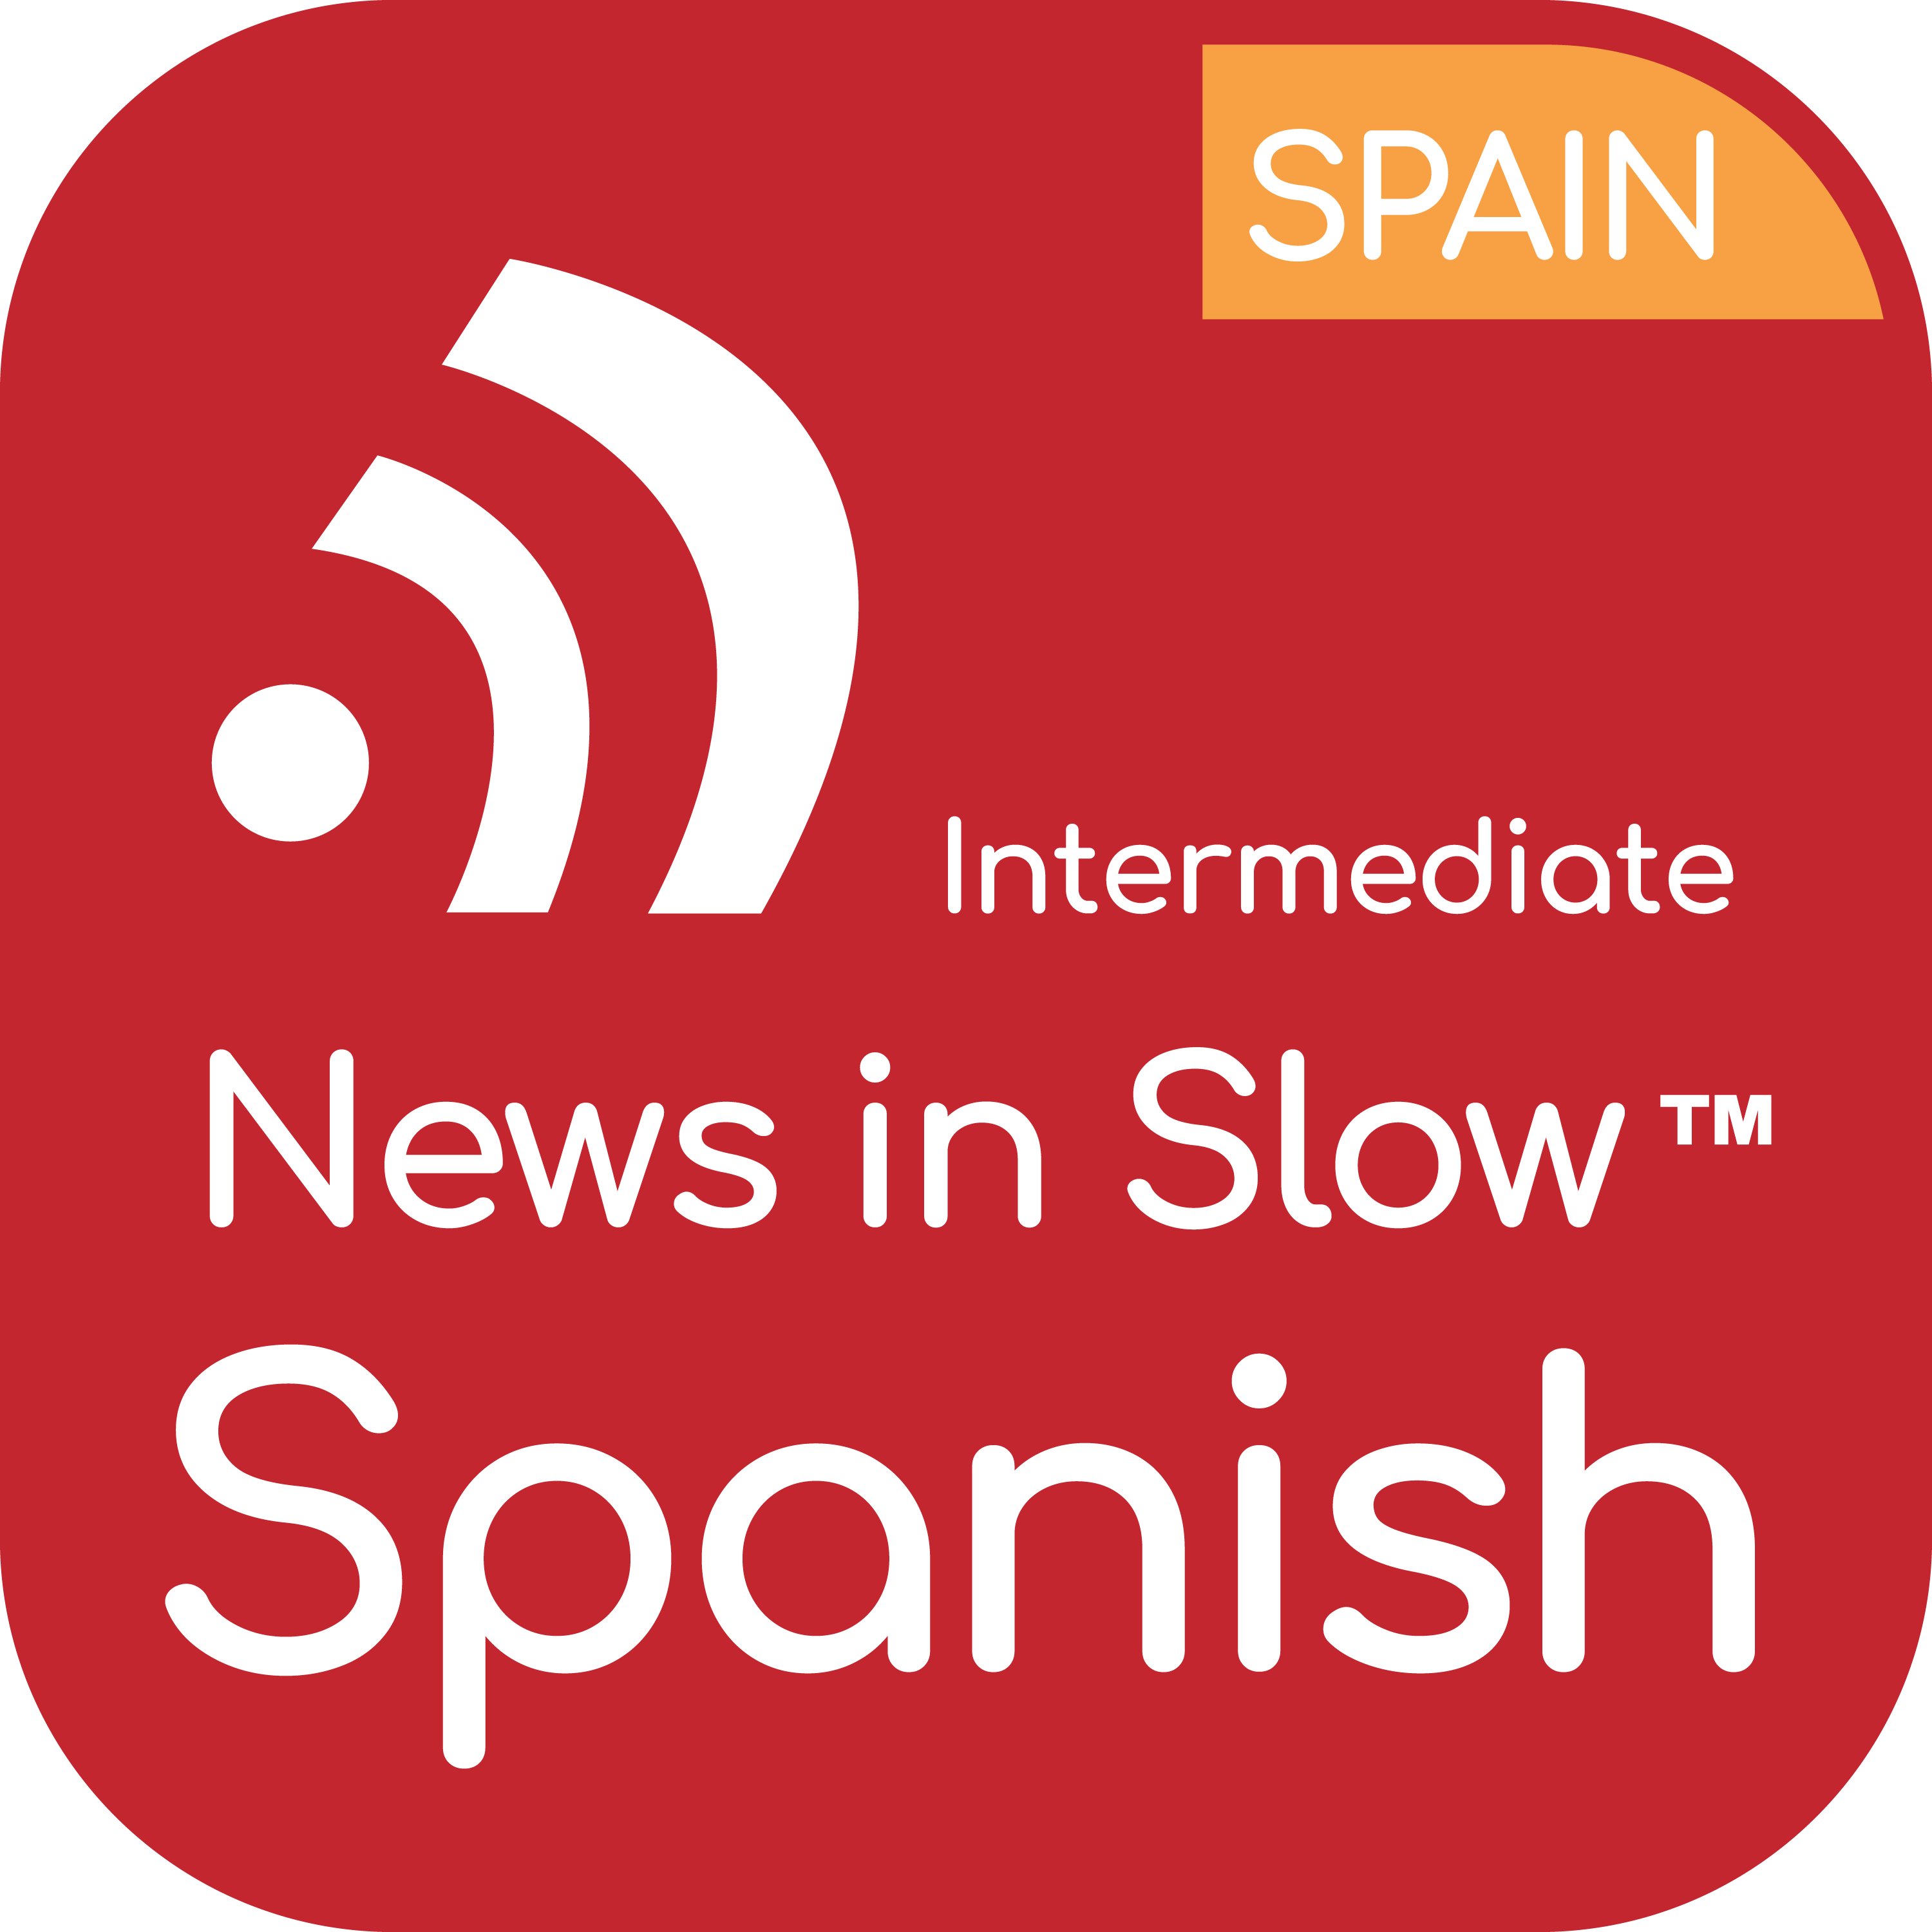 News in Slow Spanish - #617 - Study Spanish while Listening to the News